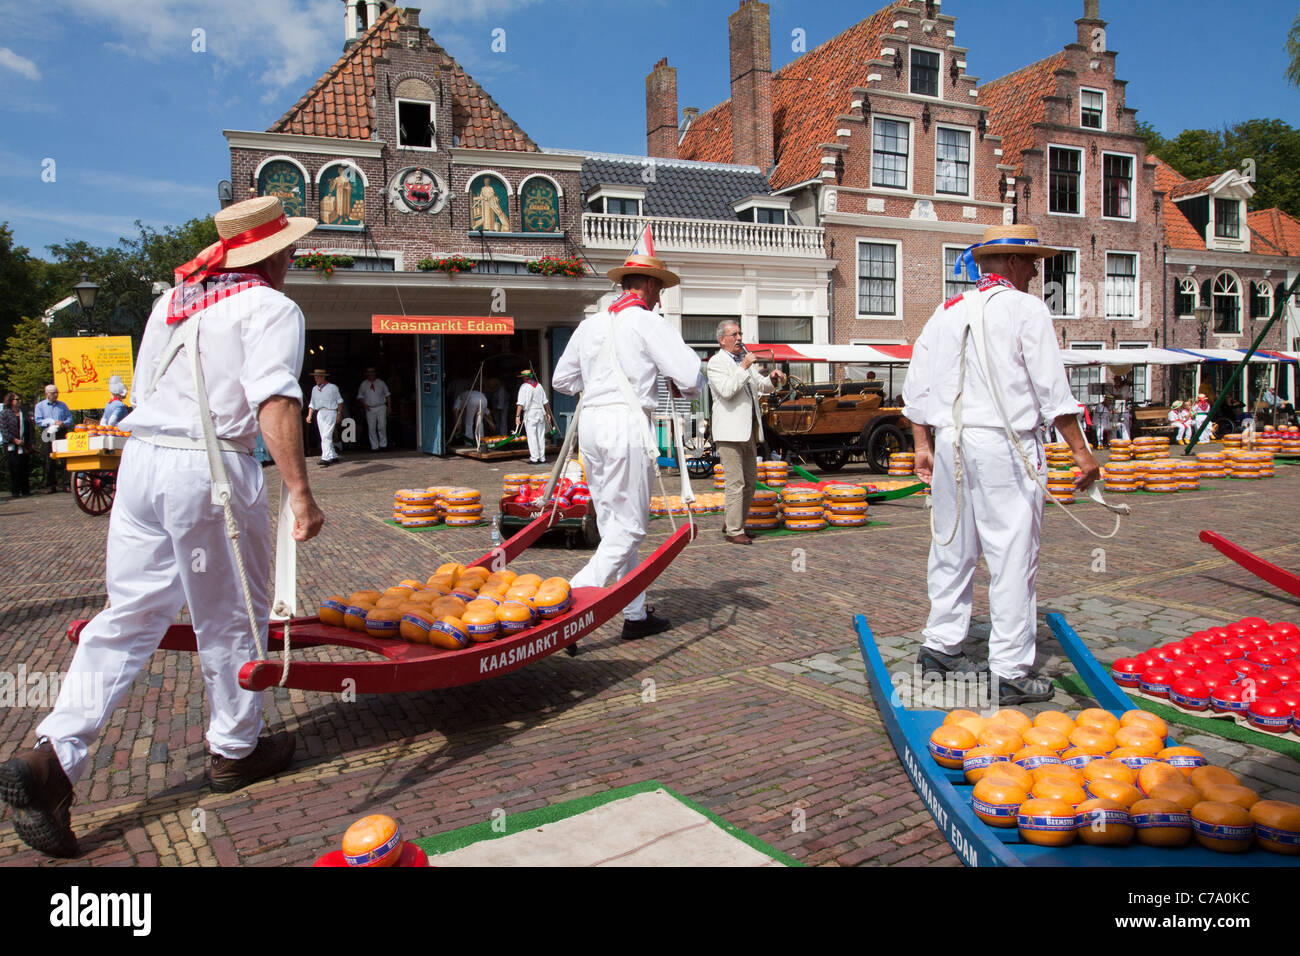 Edam Cheese Market - Stock Image